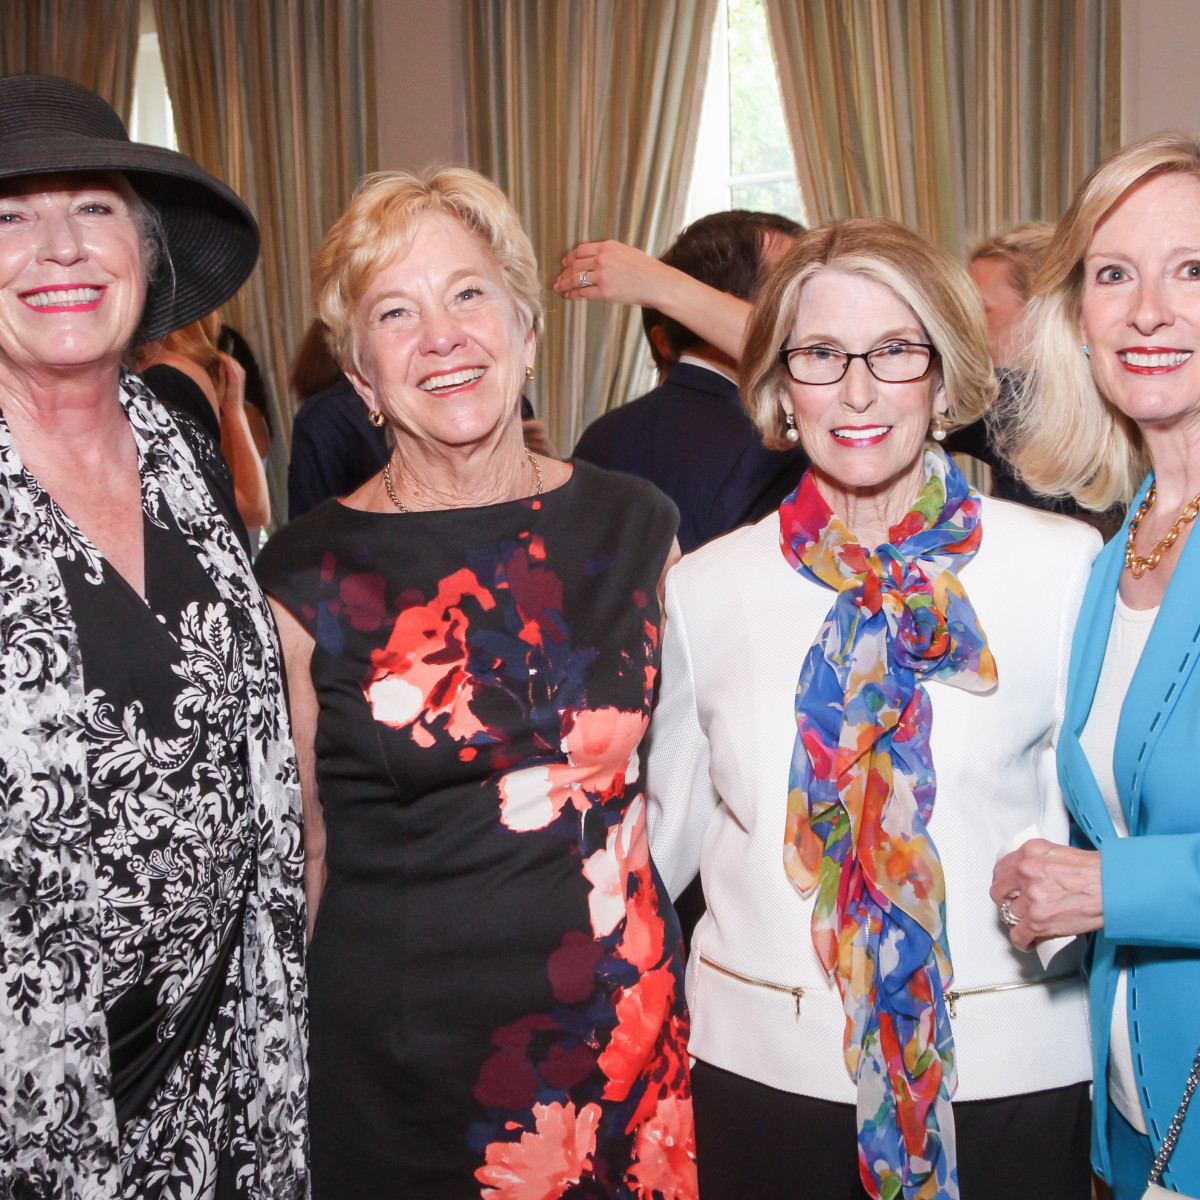 Karen Sponsel Adrian Ross Patty Pagel Janet Stanberry at MS On The Move luncheon